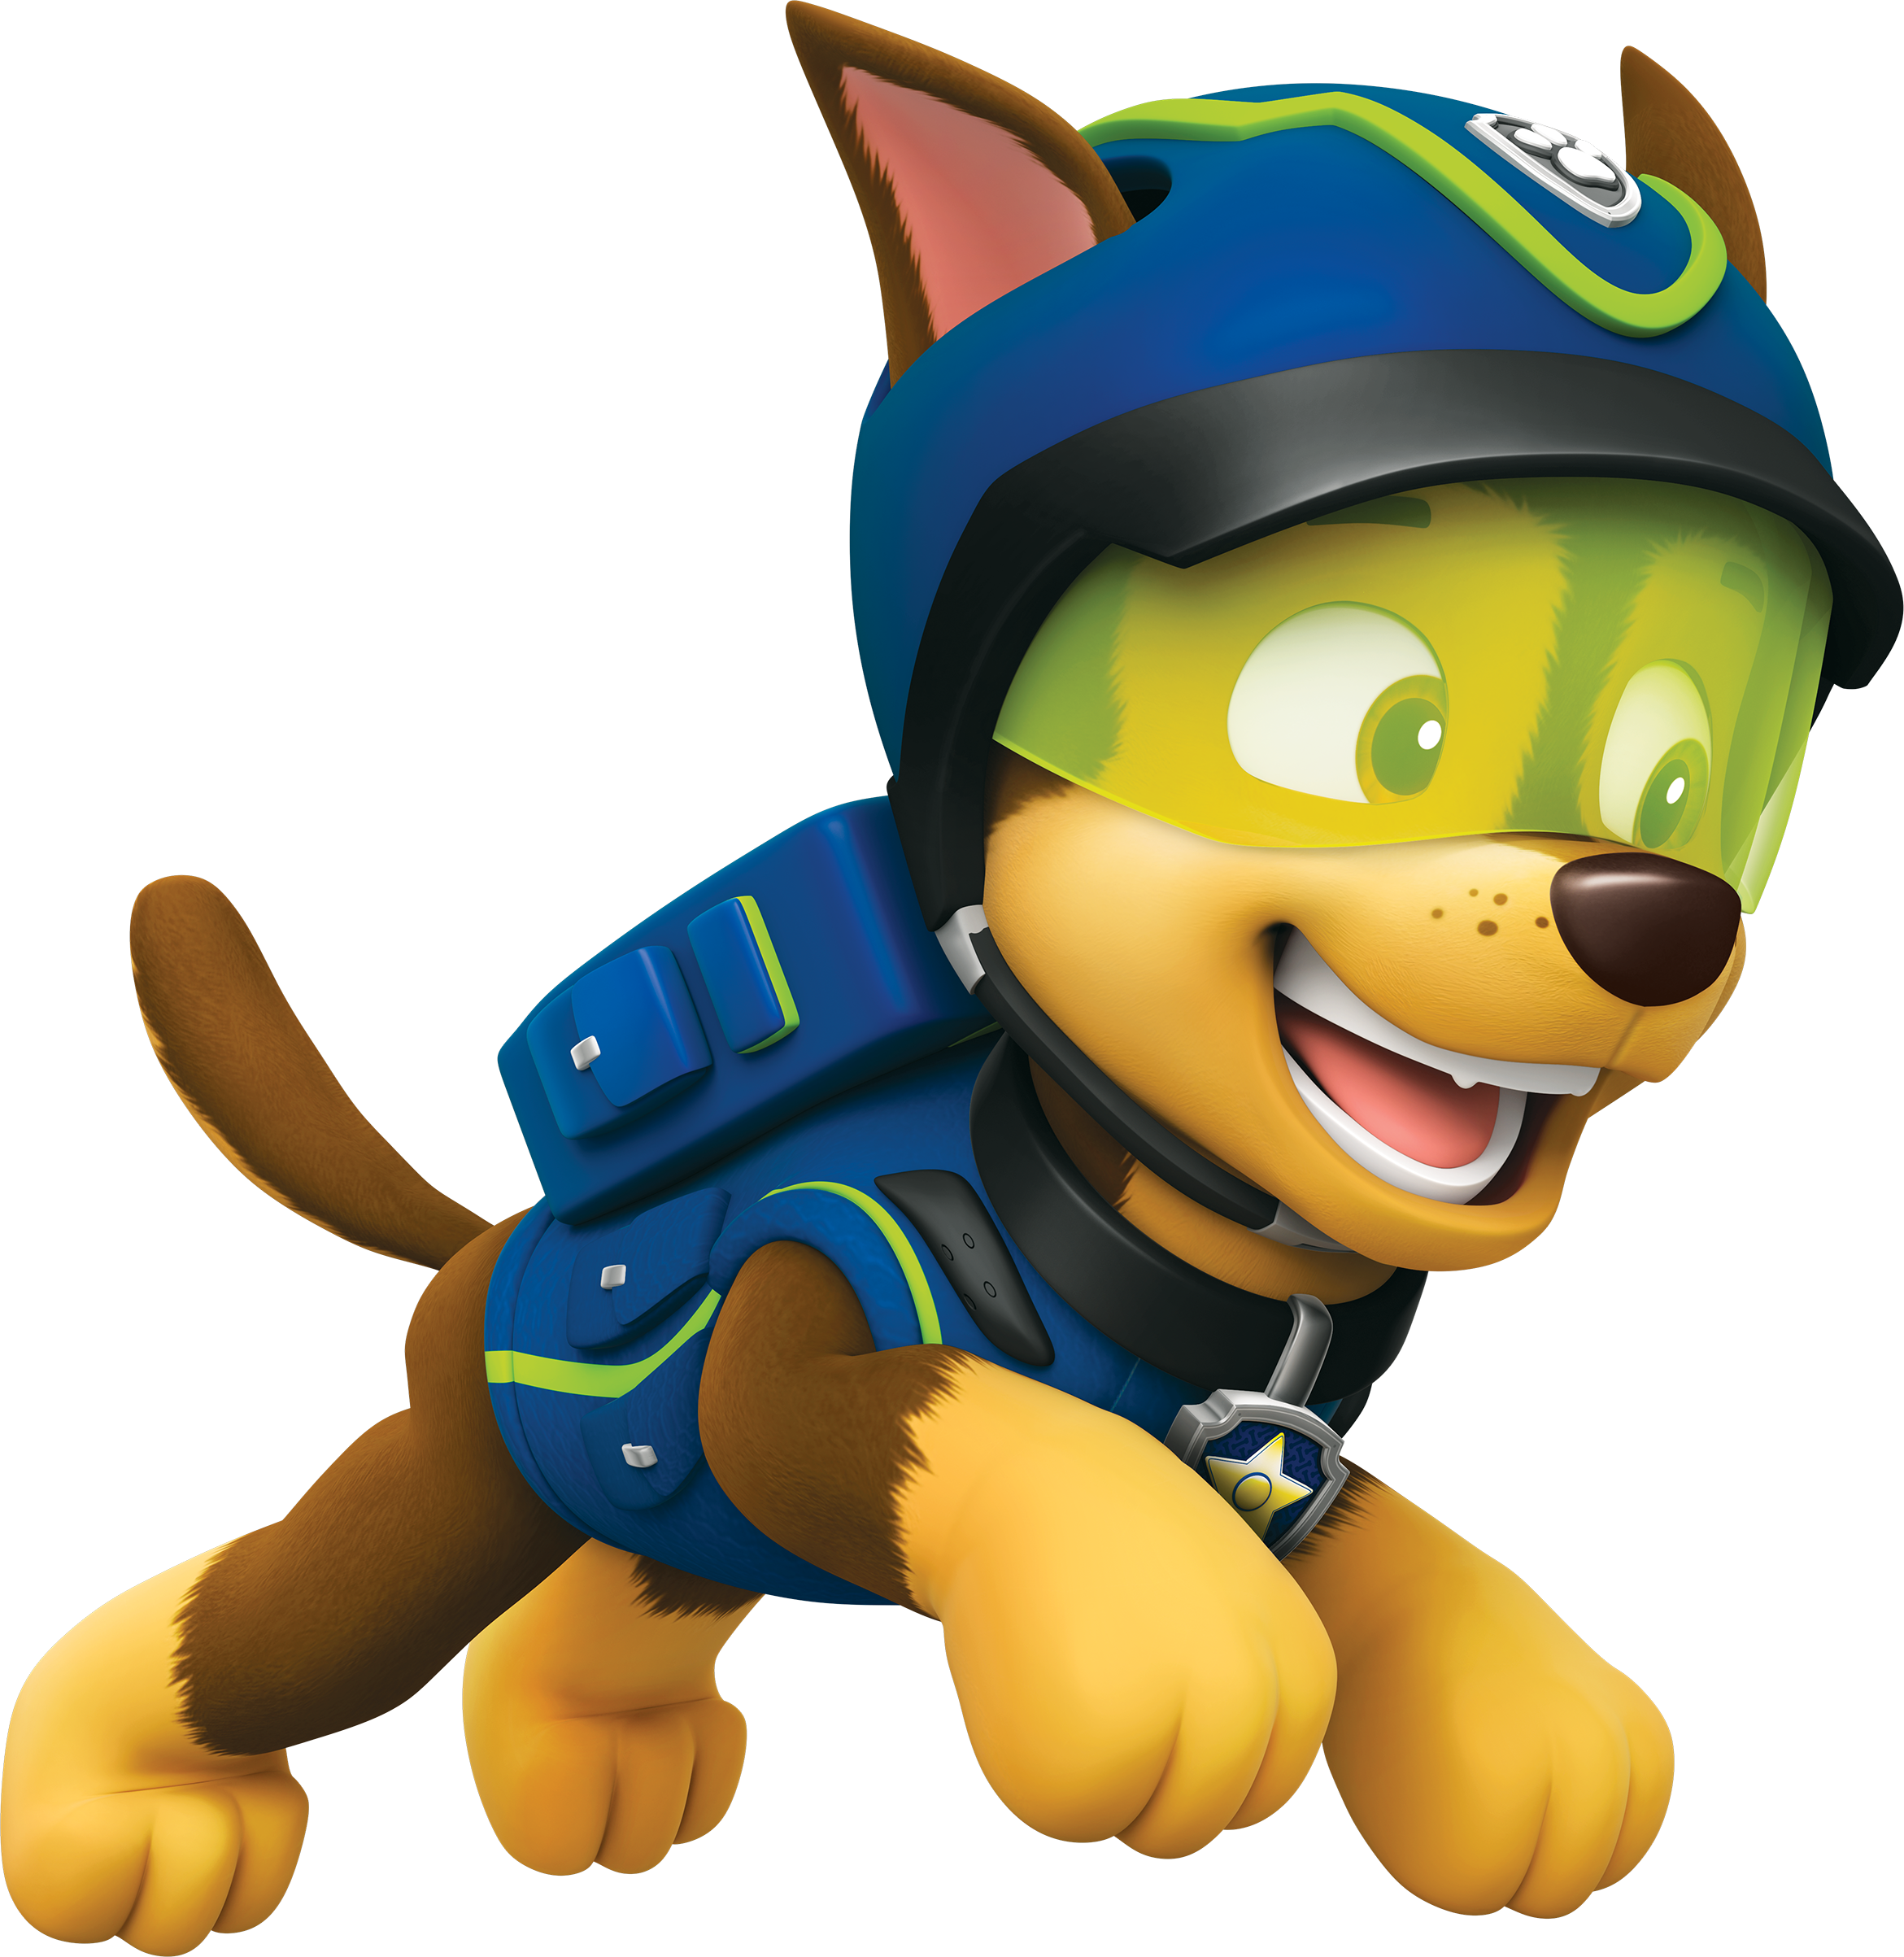 Paw Patrol Super Spy Chase Running Png Paw Patrol Birthday Chase Paw Patrol Paw Patrol Coloring